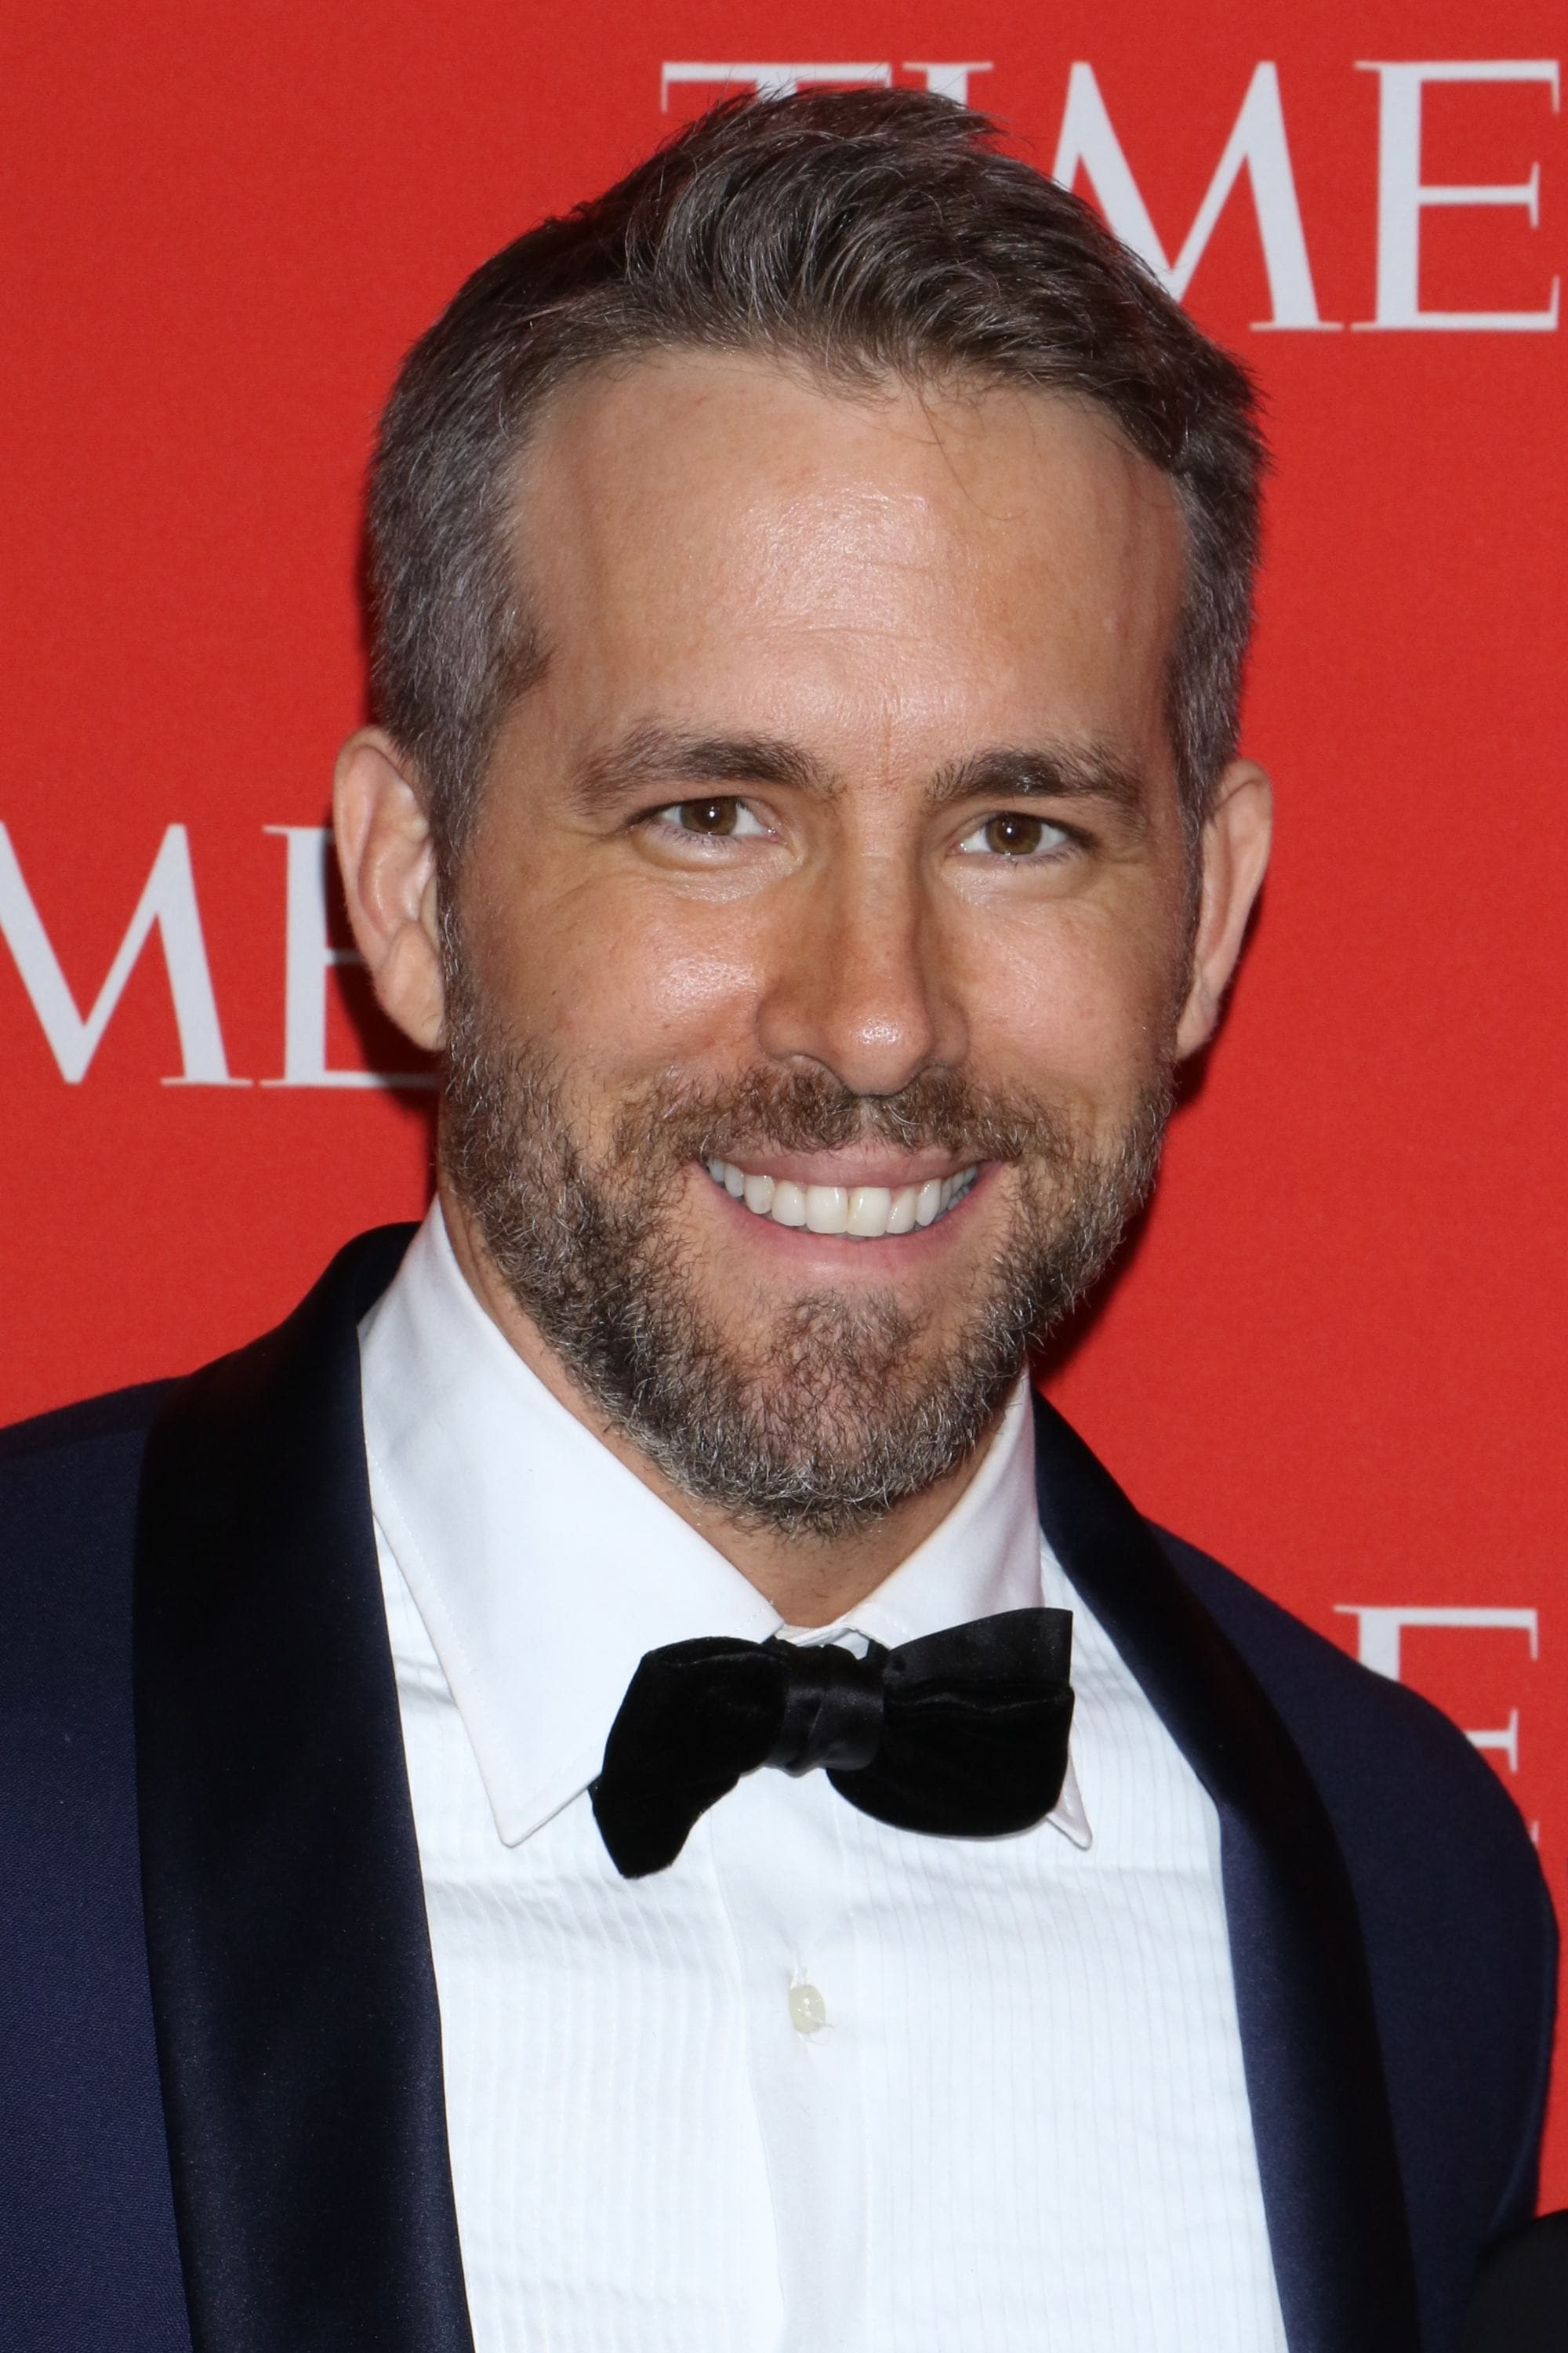 Ryan Reynolds light brown hair in taper cut on red carpet